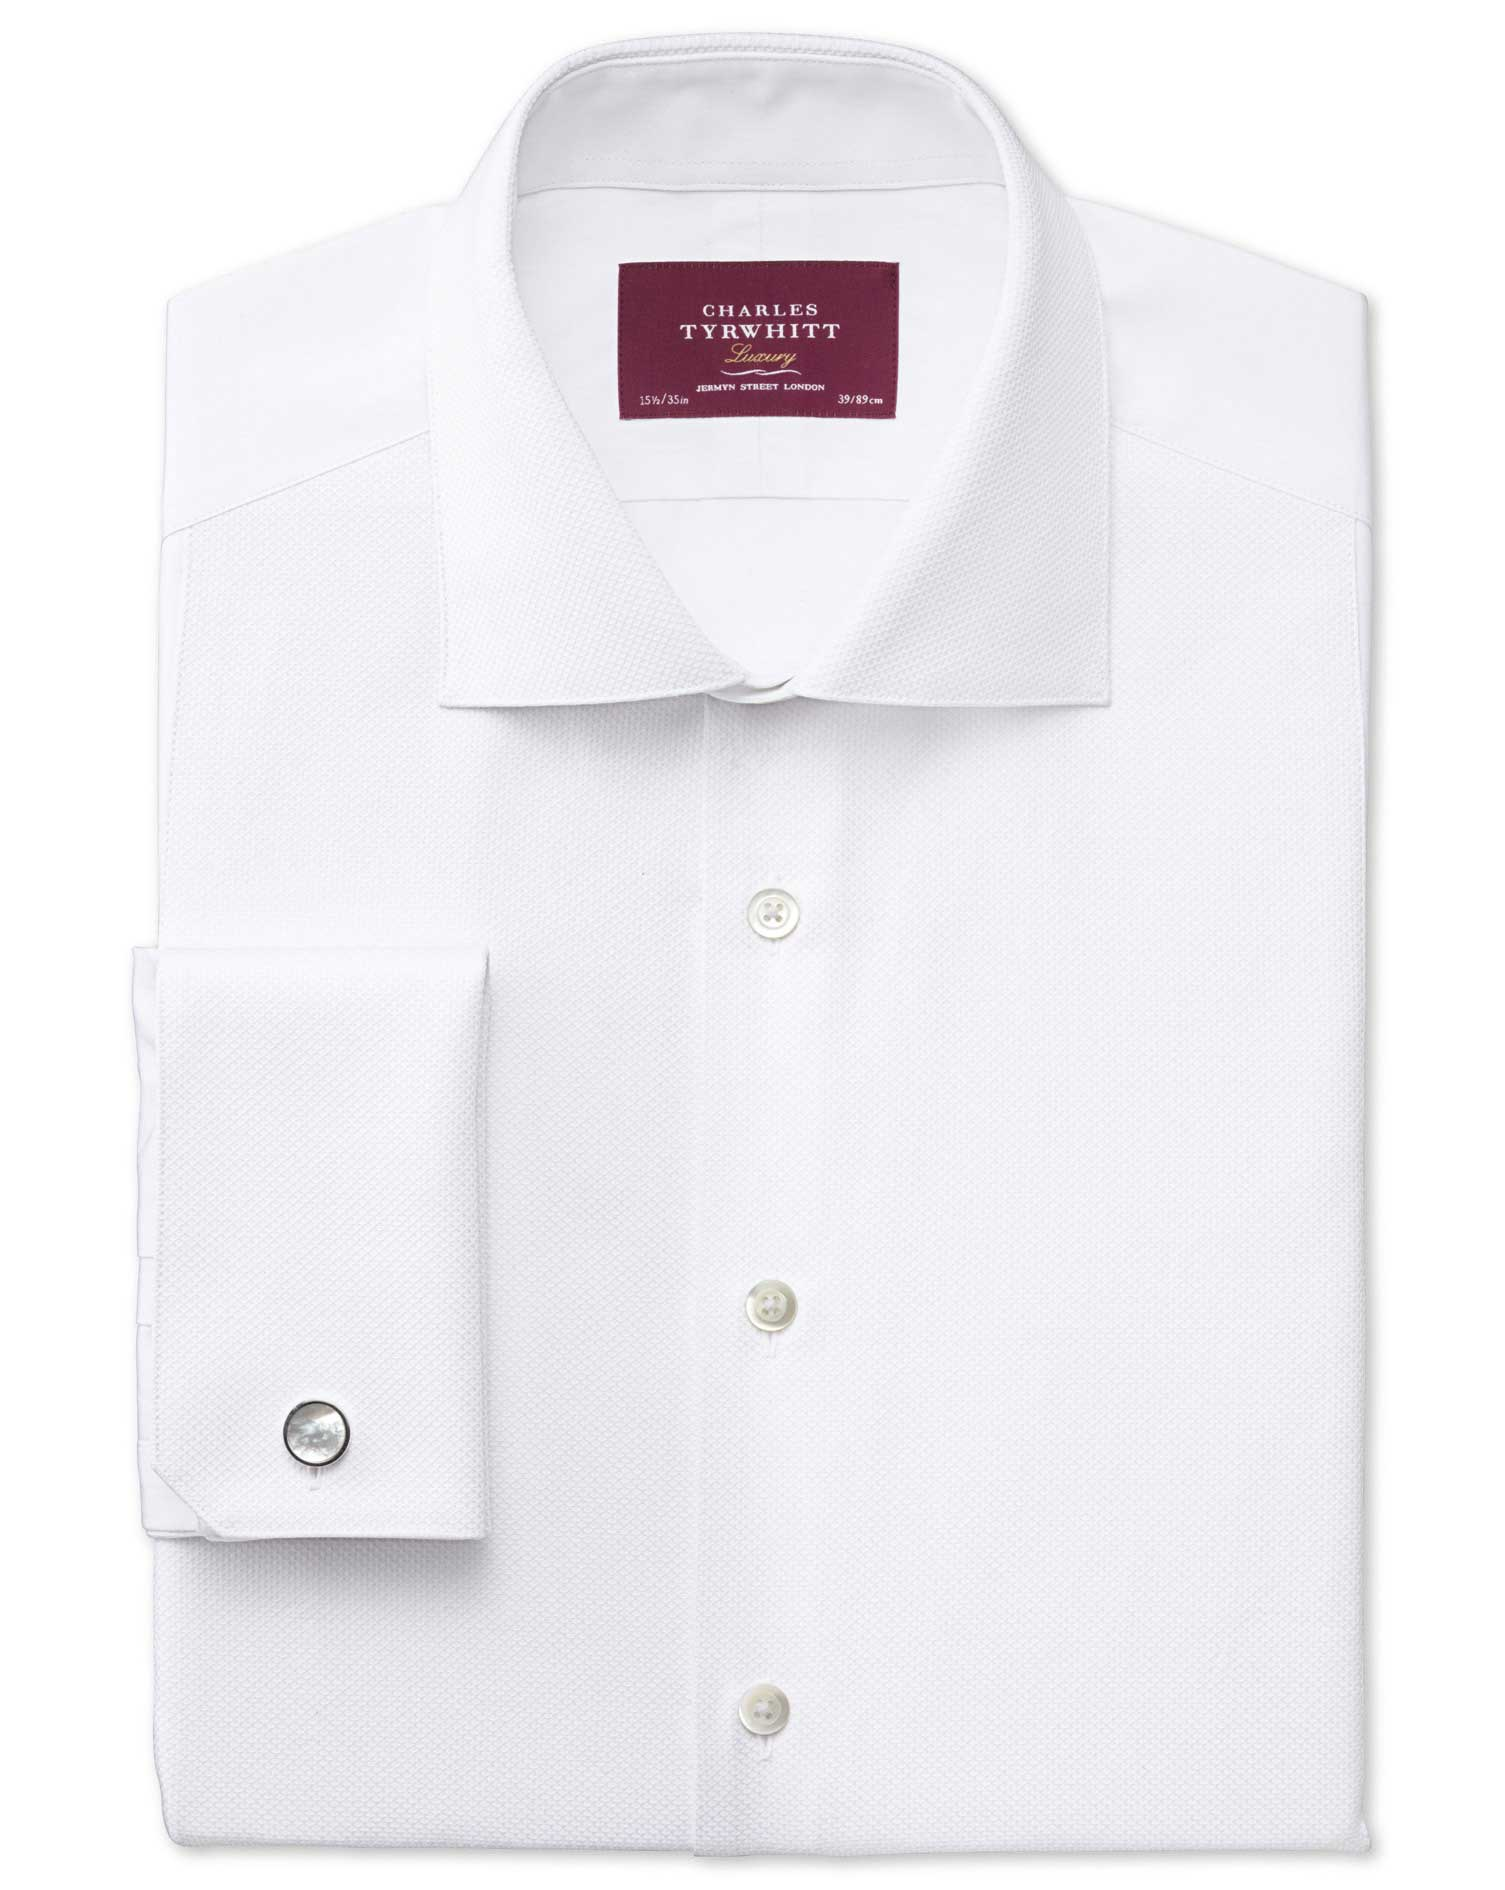 Slim Fit Cutaway Collar Luxury White Evening Egyptian Cotton Formal Shirt Single Cuff Size 16/32 by